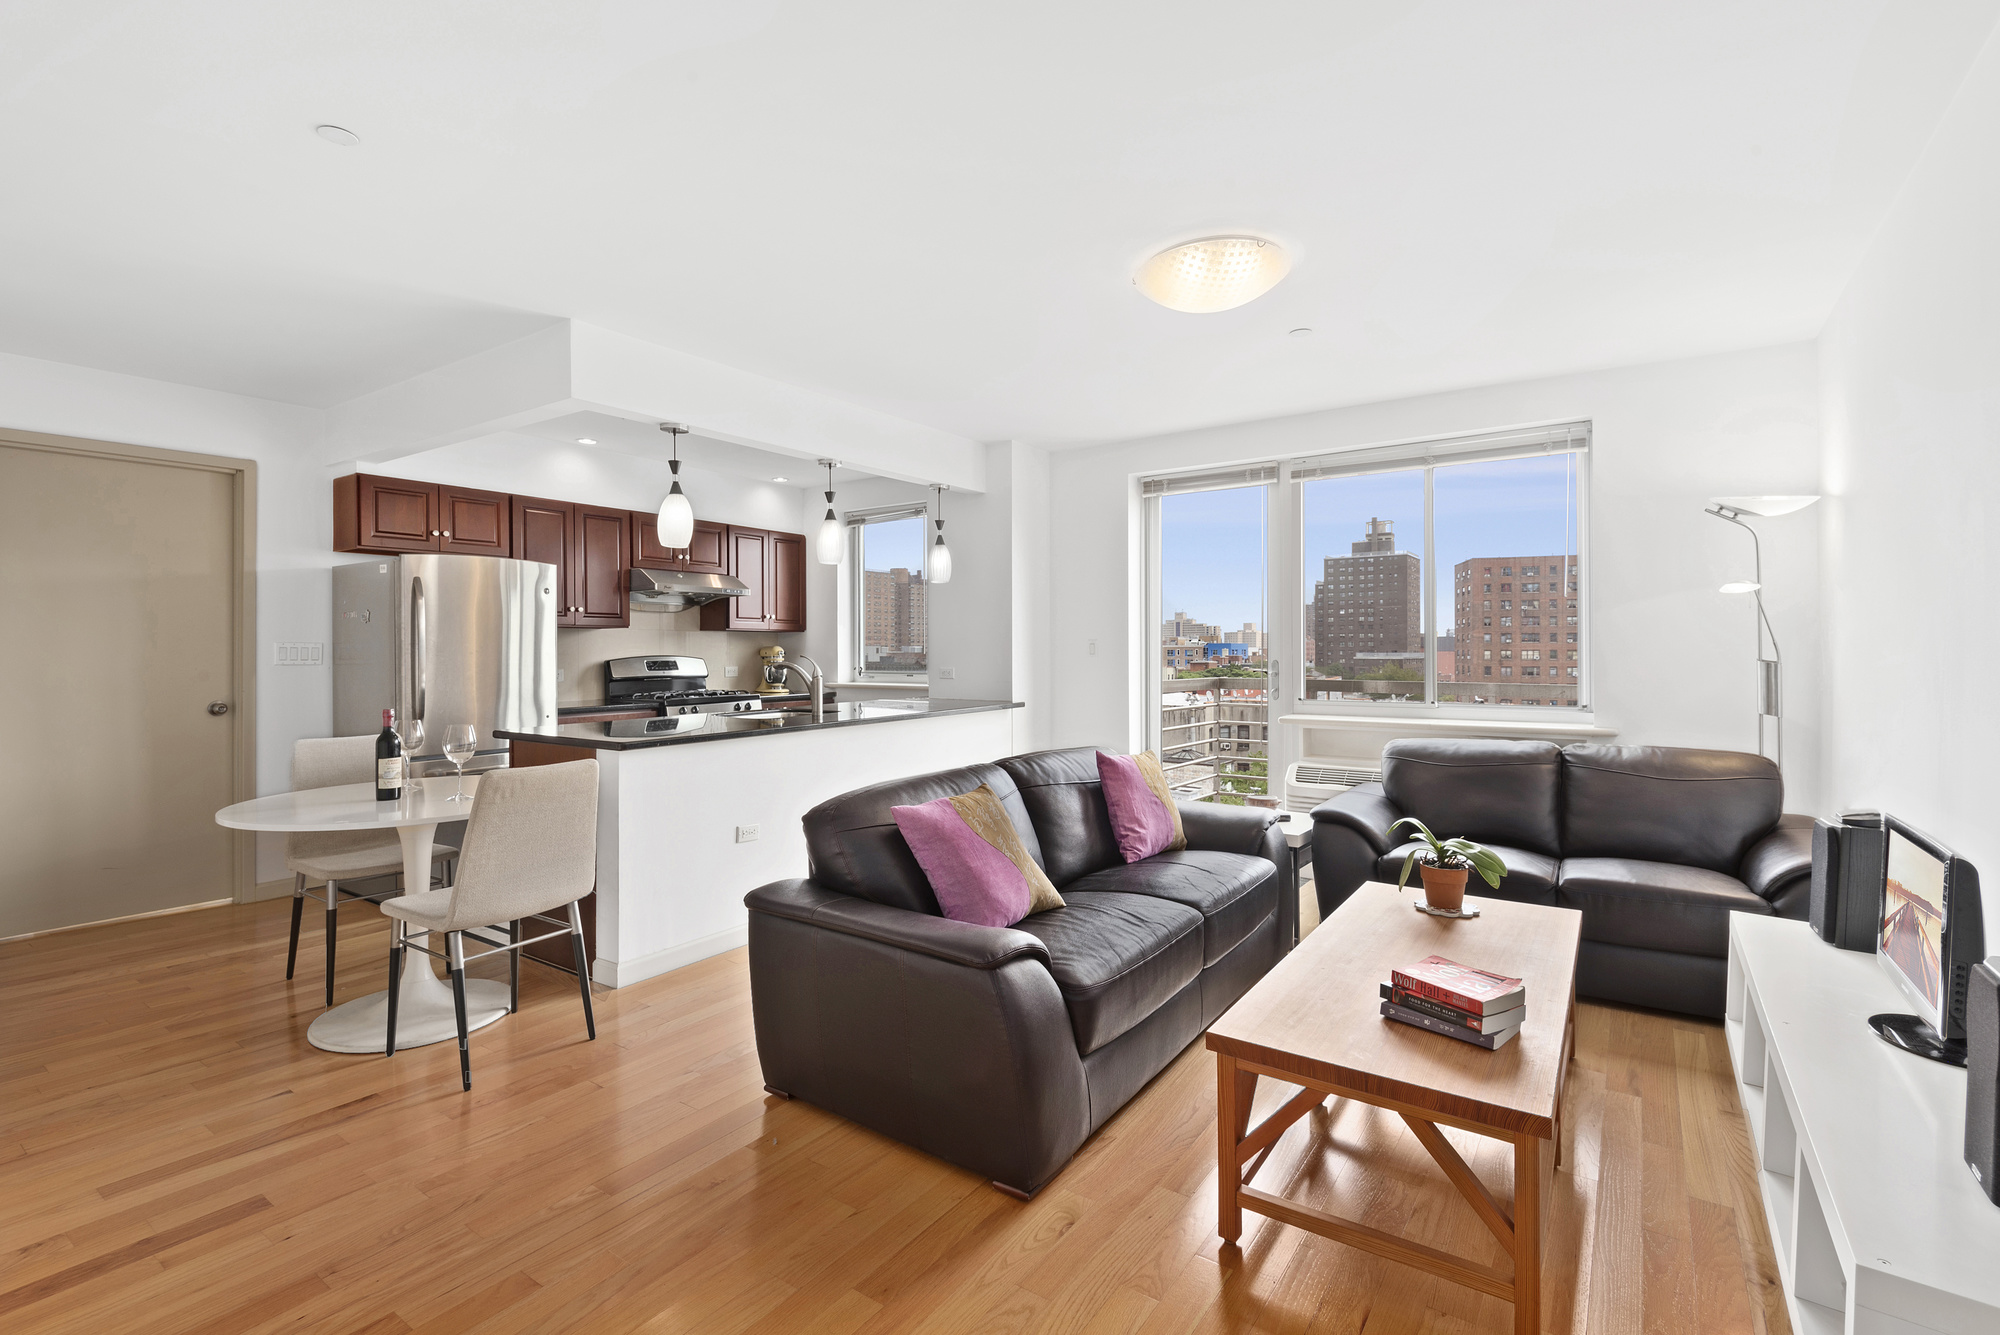 1635 Lexington Avenue, Apt 8-B, Manhattan, New York 10030